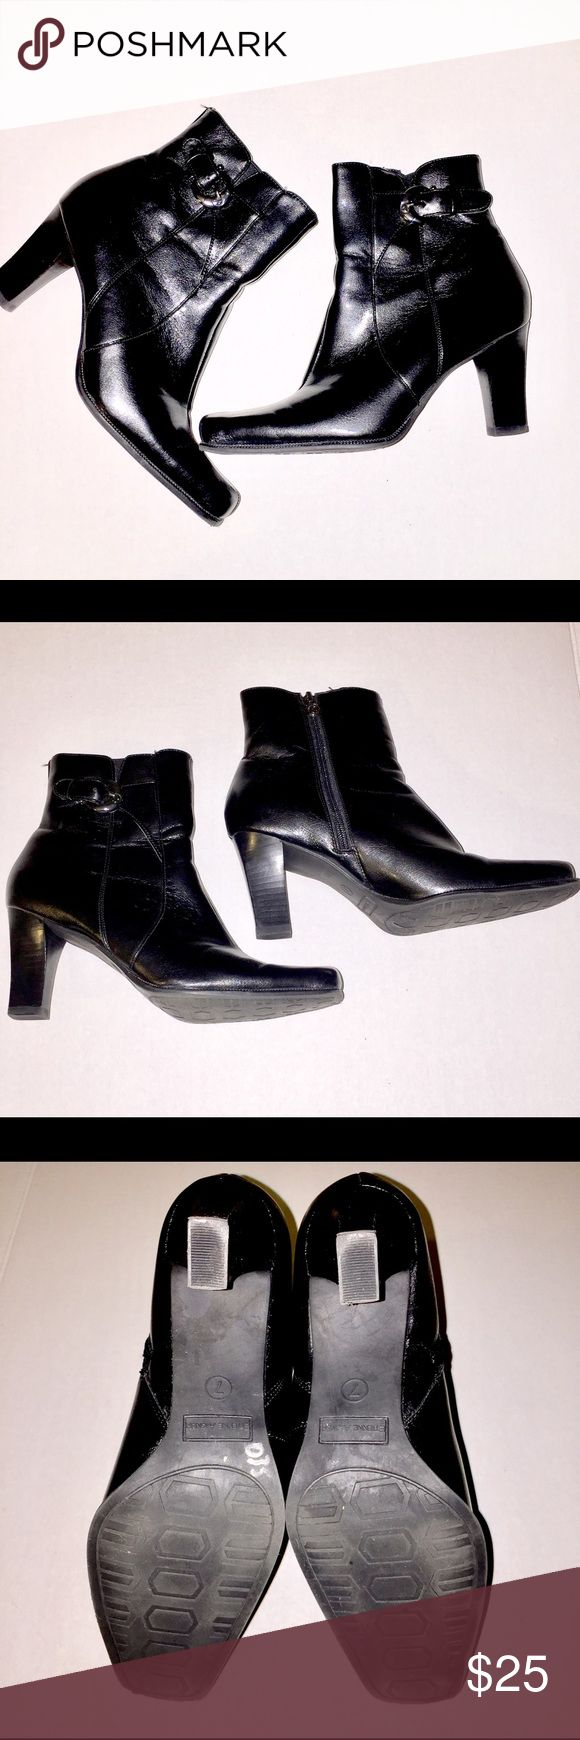 Etienne Aigner Short Black Bootie Etienne Aigner Short Black Bootie, Size 7M, Great Condition. Etienne Aigner Shoes Heeled Boots